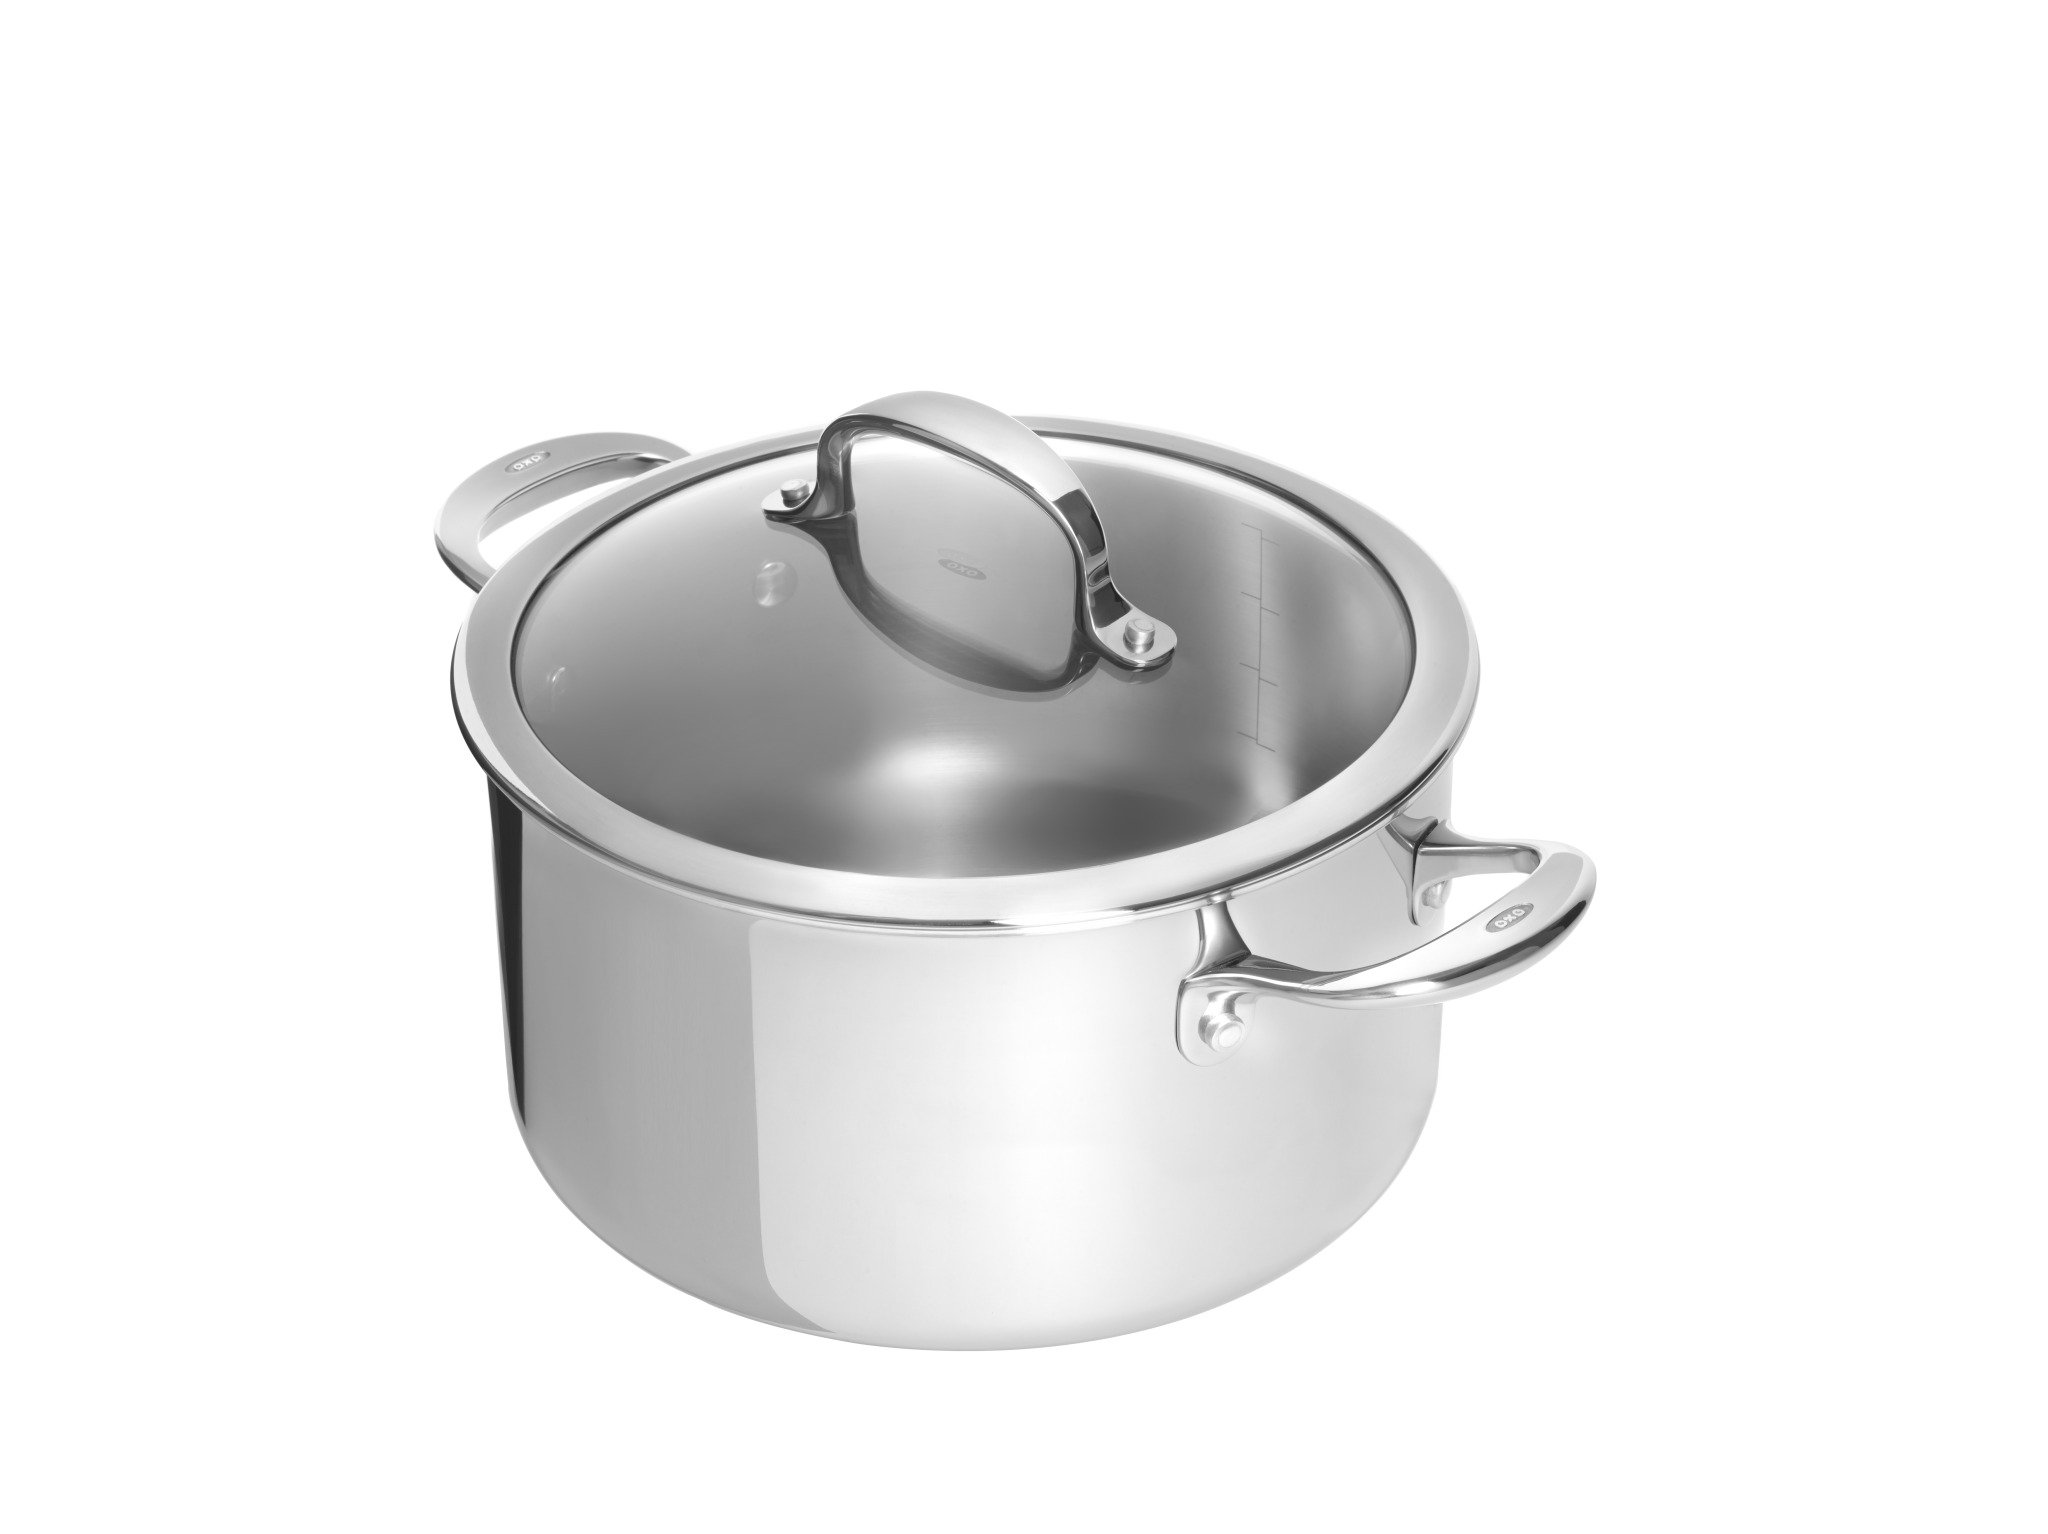 OXO Good Grips Tri-Ply Stainless Steel Pro 8QT Covered Stockpot